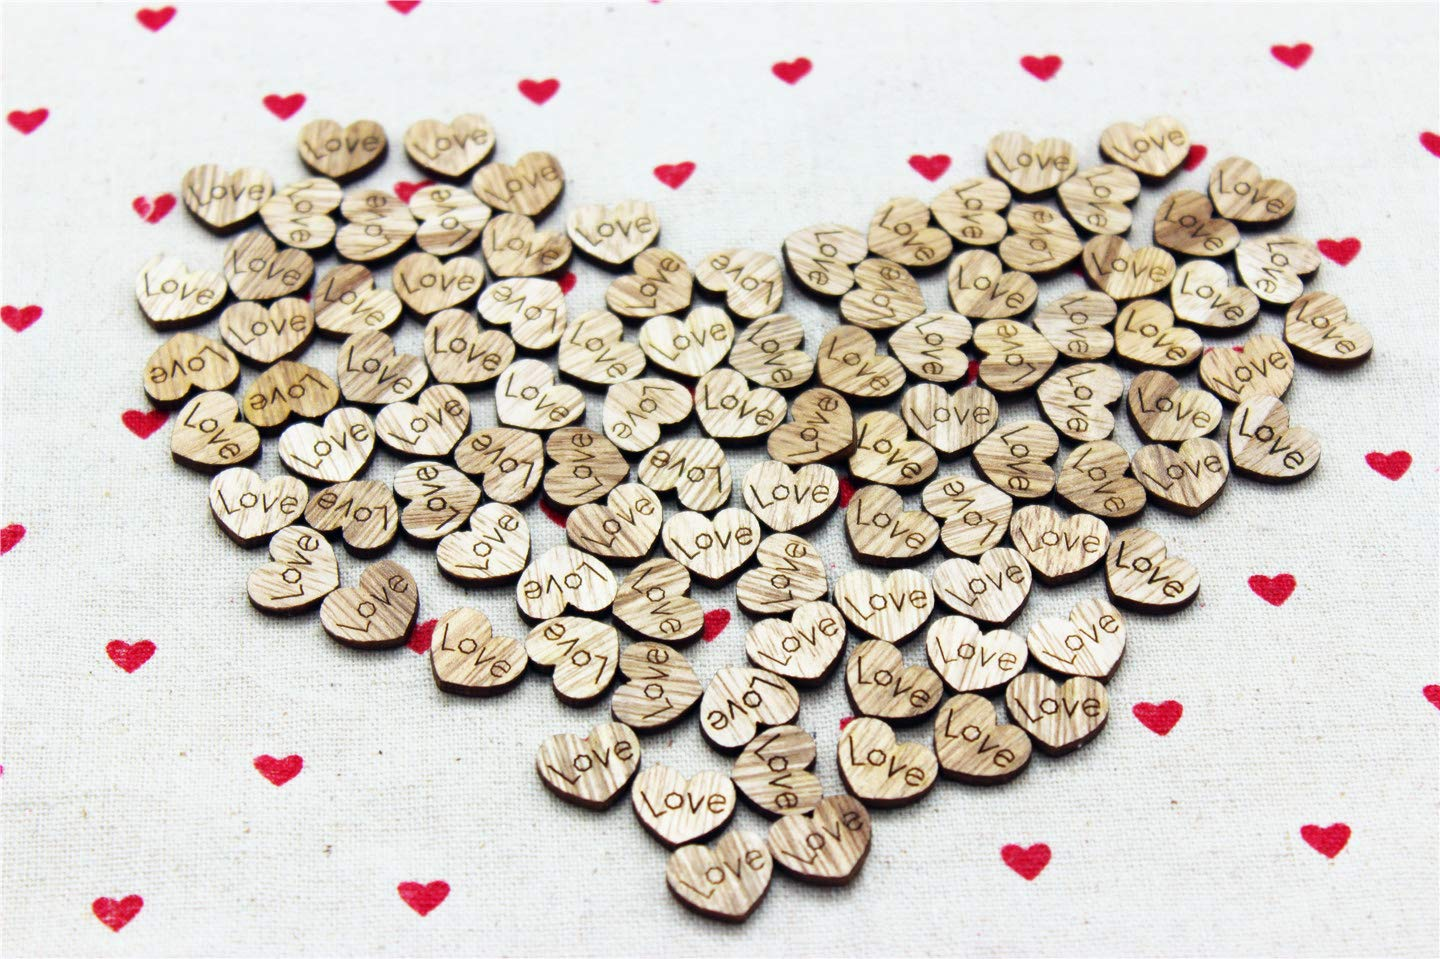 COOLJOY 400 Pcs Rustic Wooden Love Heart Table Scatter for Wedding Decorations Perfect for Rustic Wedding Planning,Marriage,Bridal Showers,and DIY Crafts